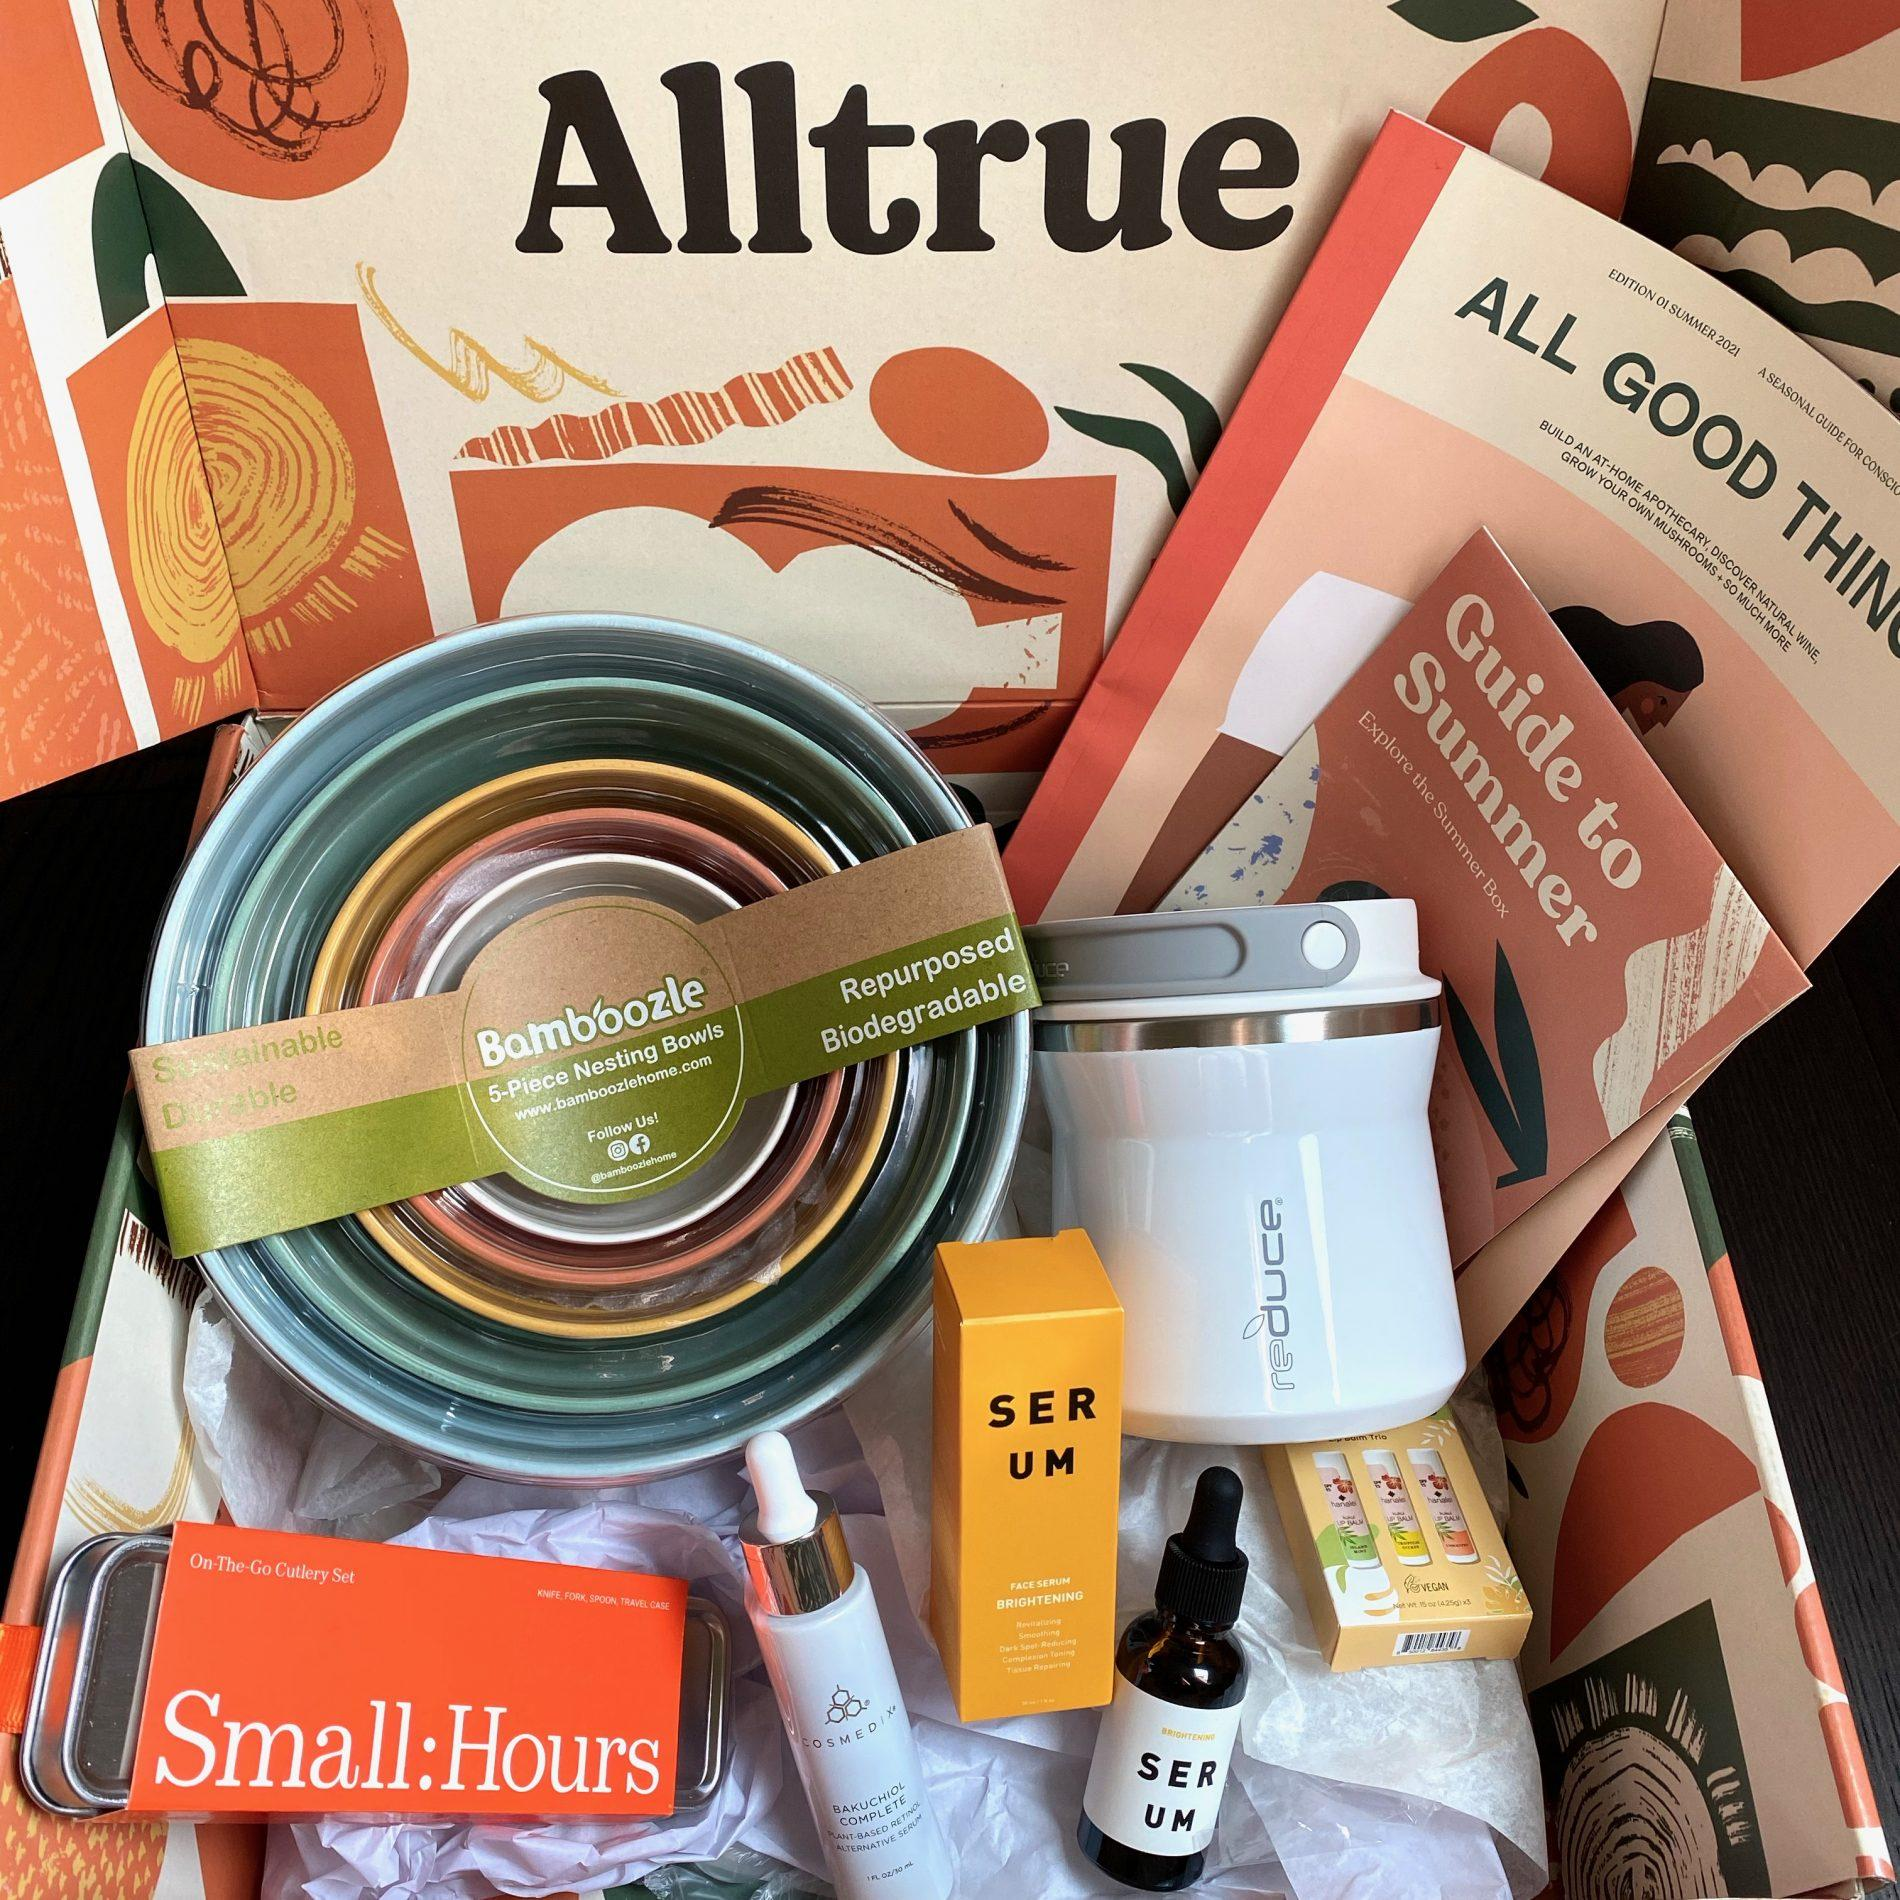 All True Review + Coupon Code – Summer 2021